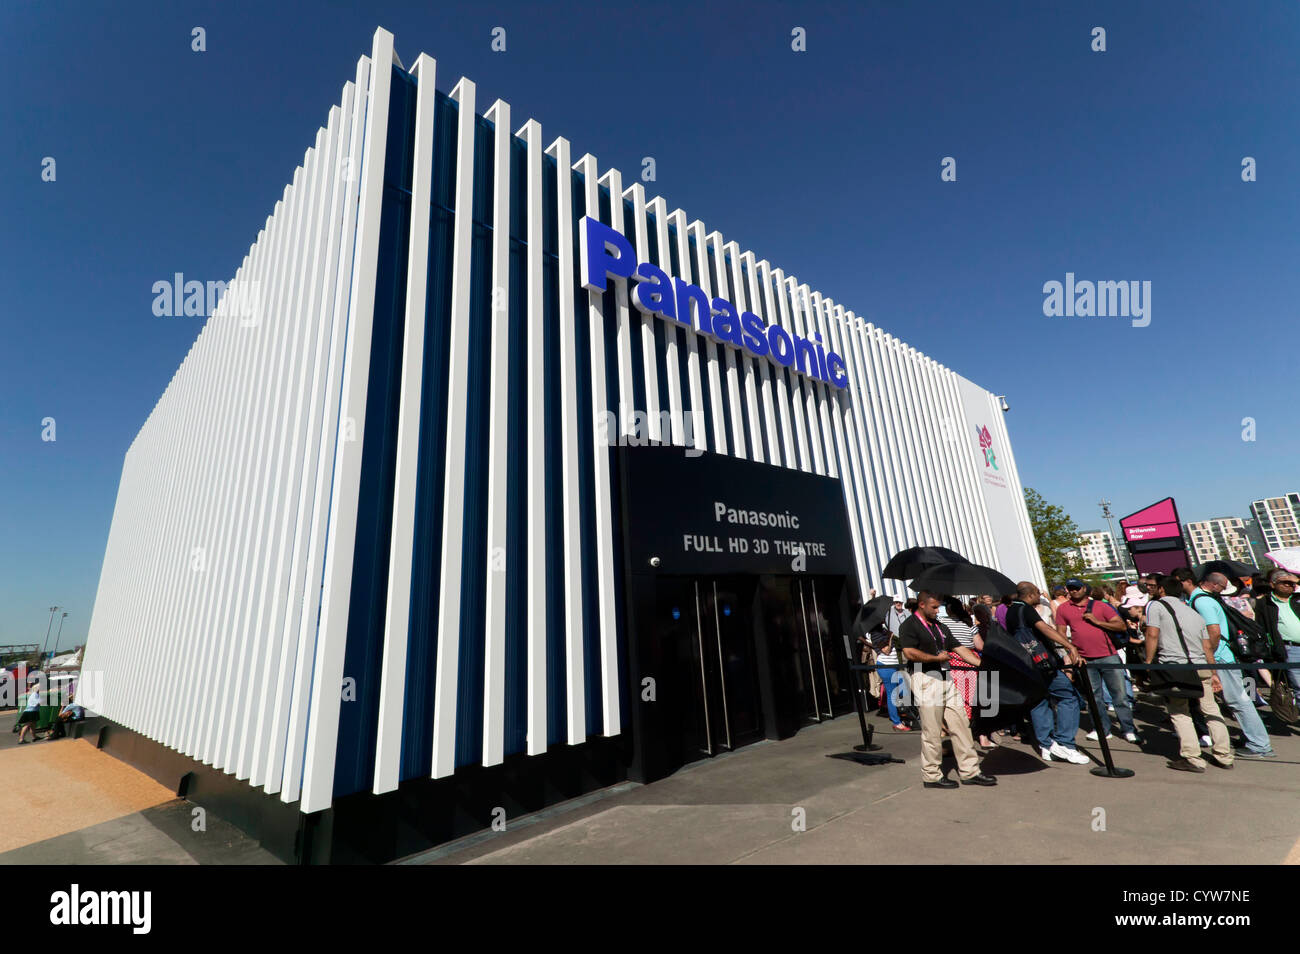 Wide angle view of people queing to enter the Panasonic full HD 3D Theatre, in the Olympic Park, Stratford - Stock Image